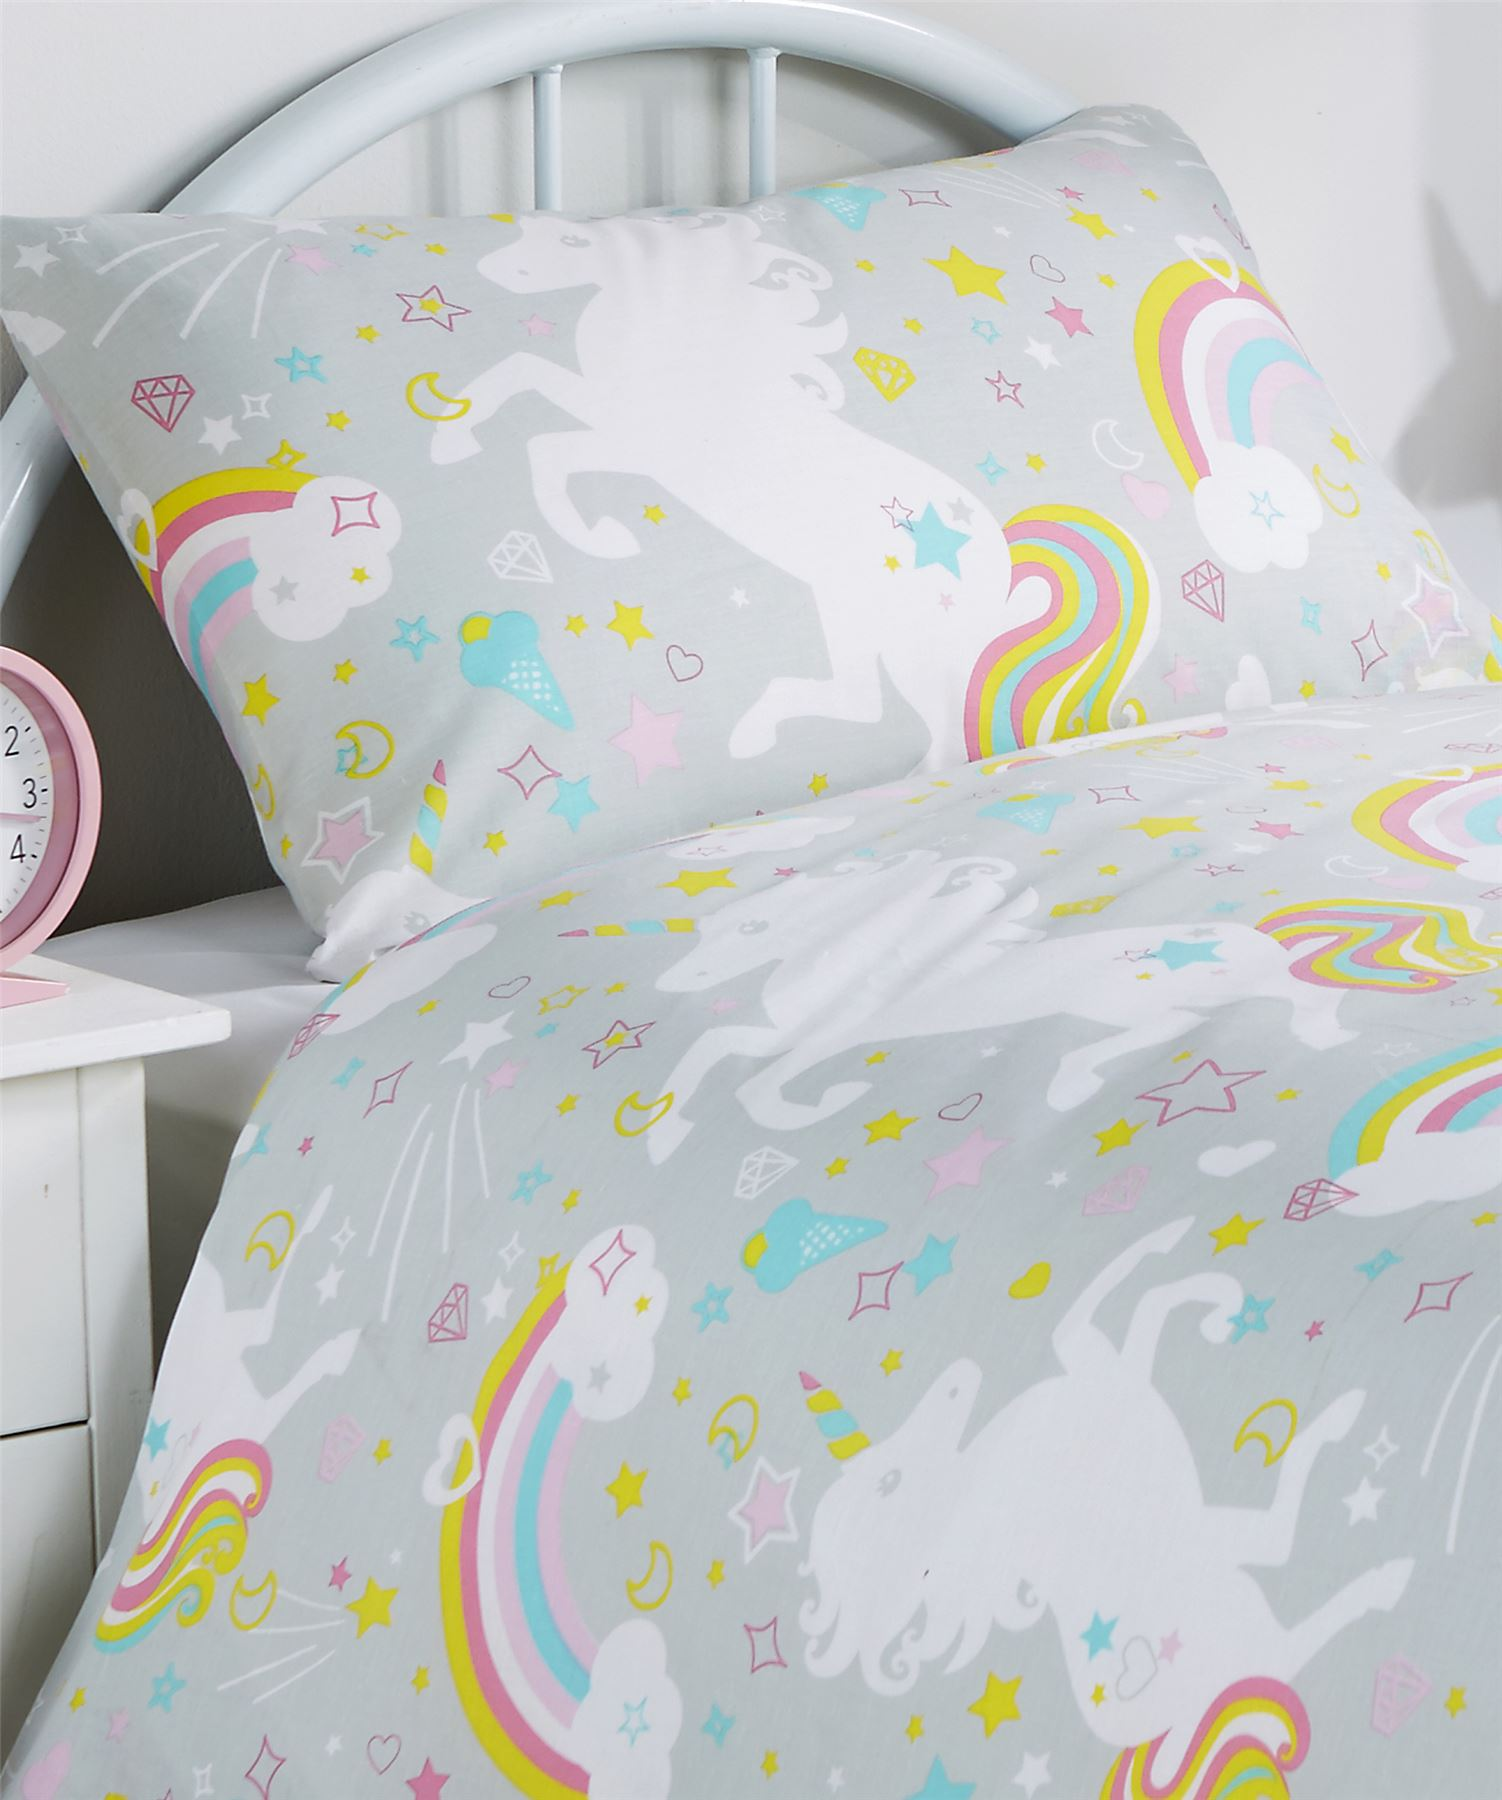 Unicorn Duvet Cover Set Girls Quilt Cover Unicorn Bedding